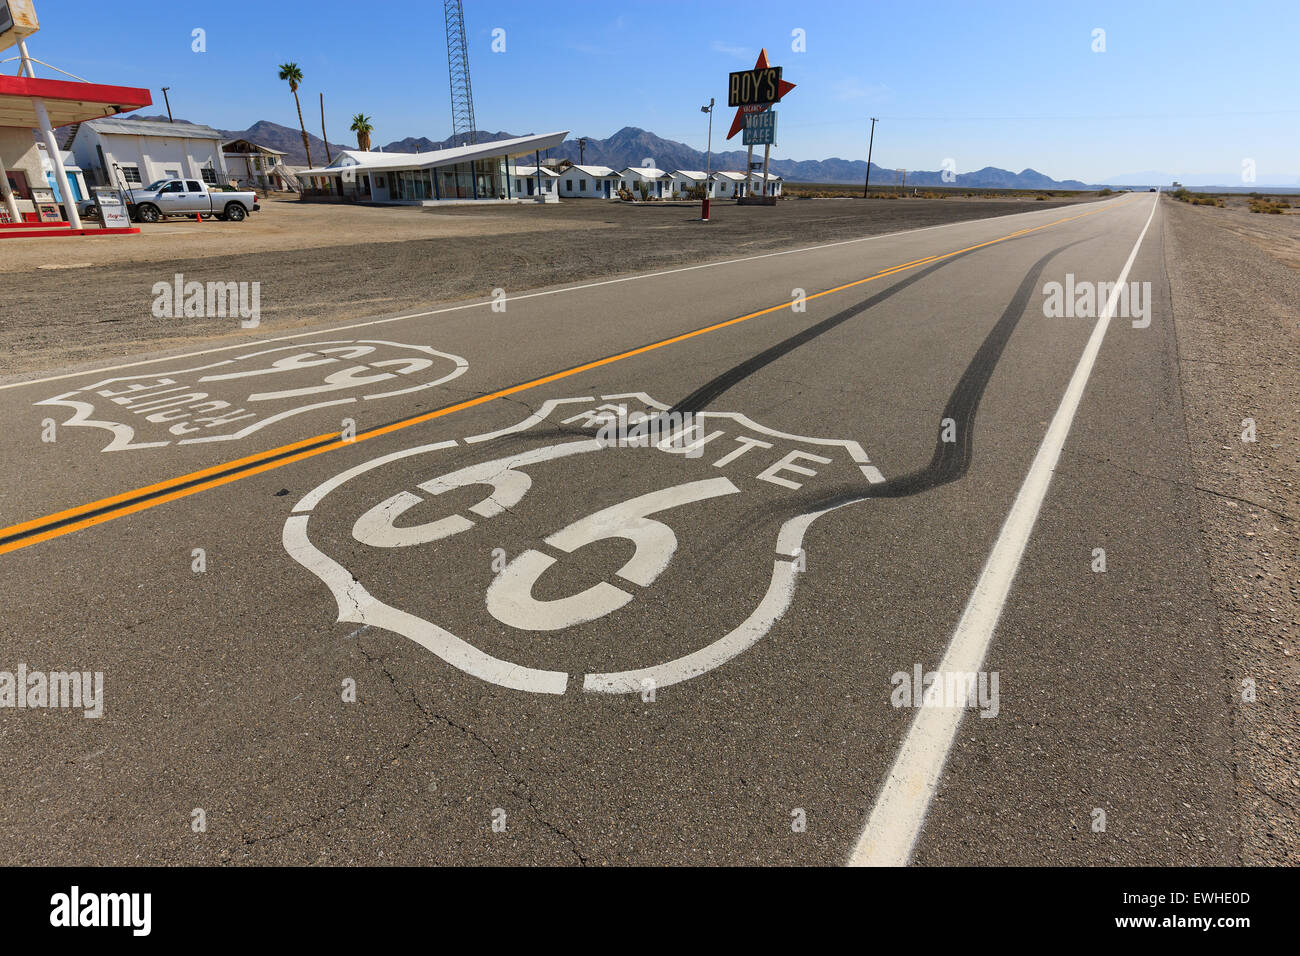 Amboy auf der Route 66, Kalifornien, USA. Stockfoto